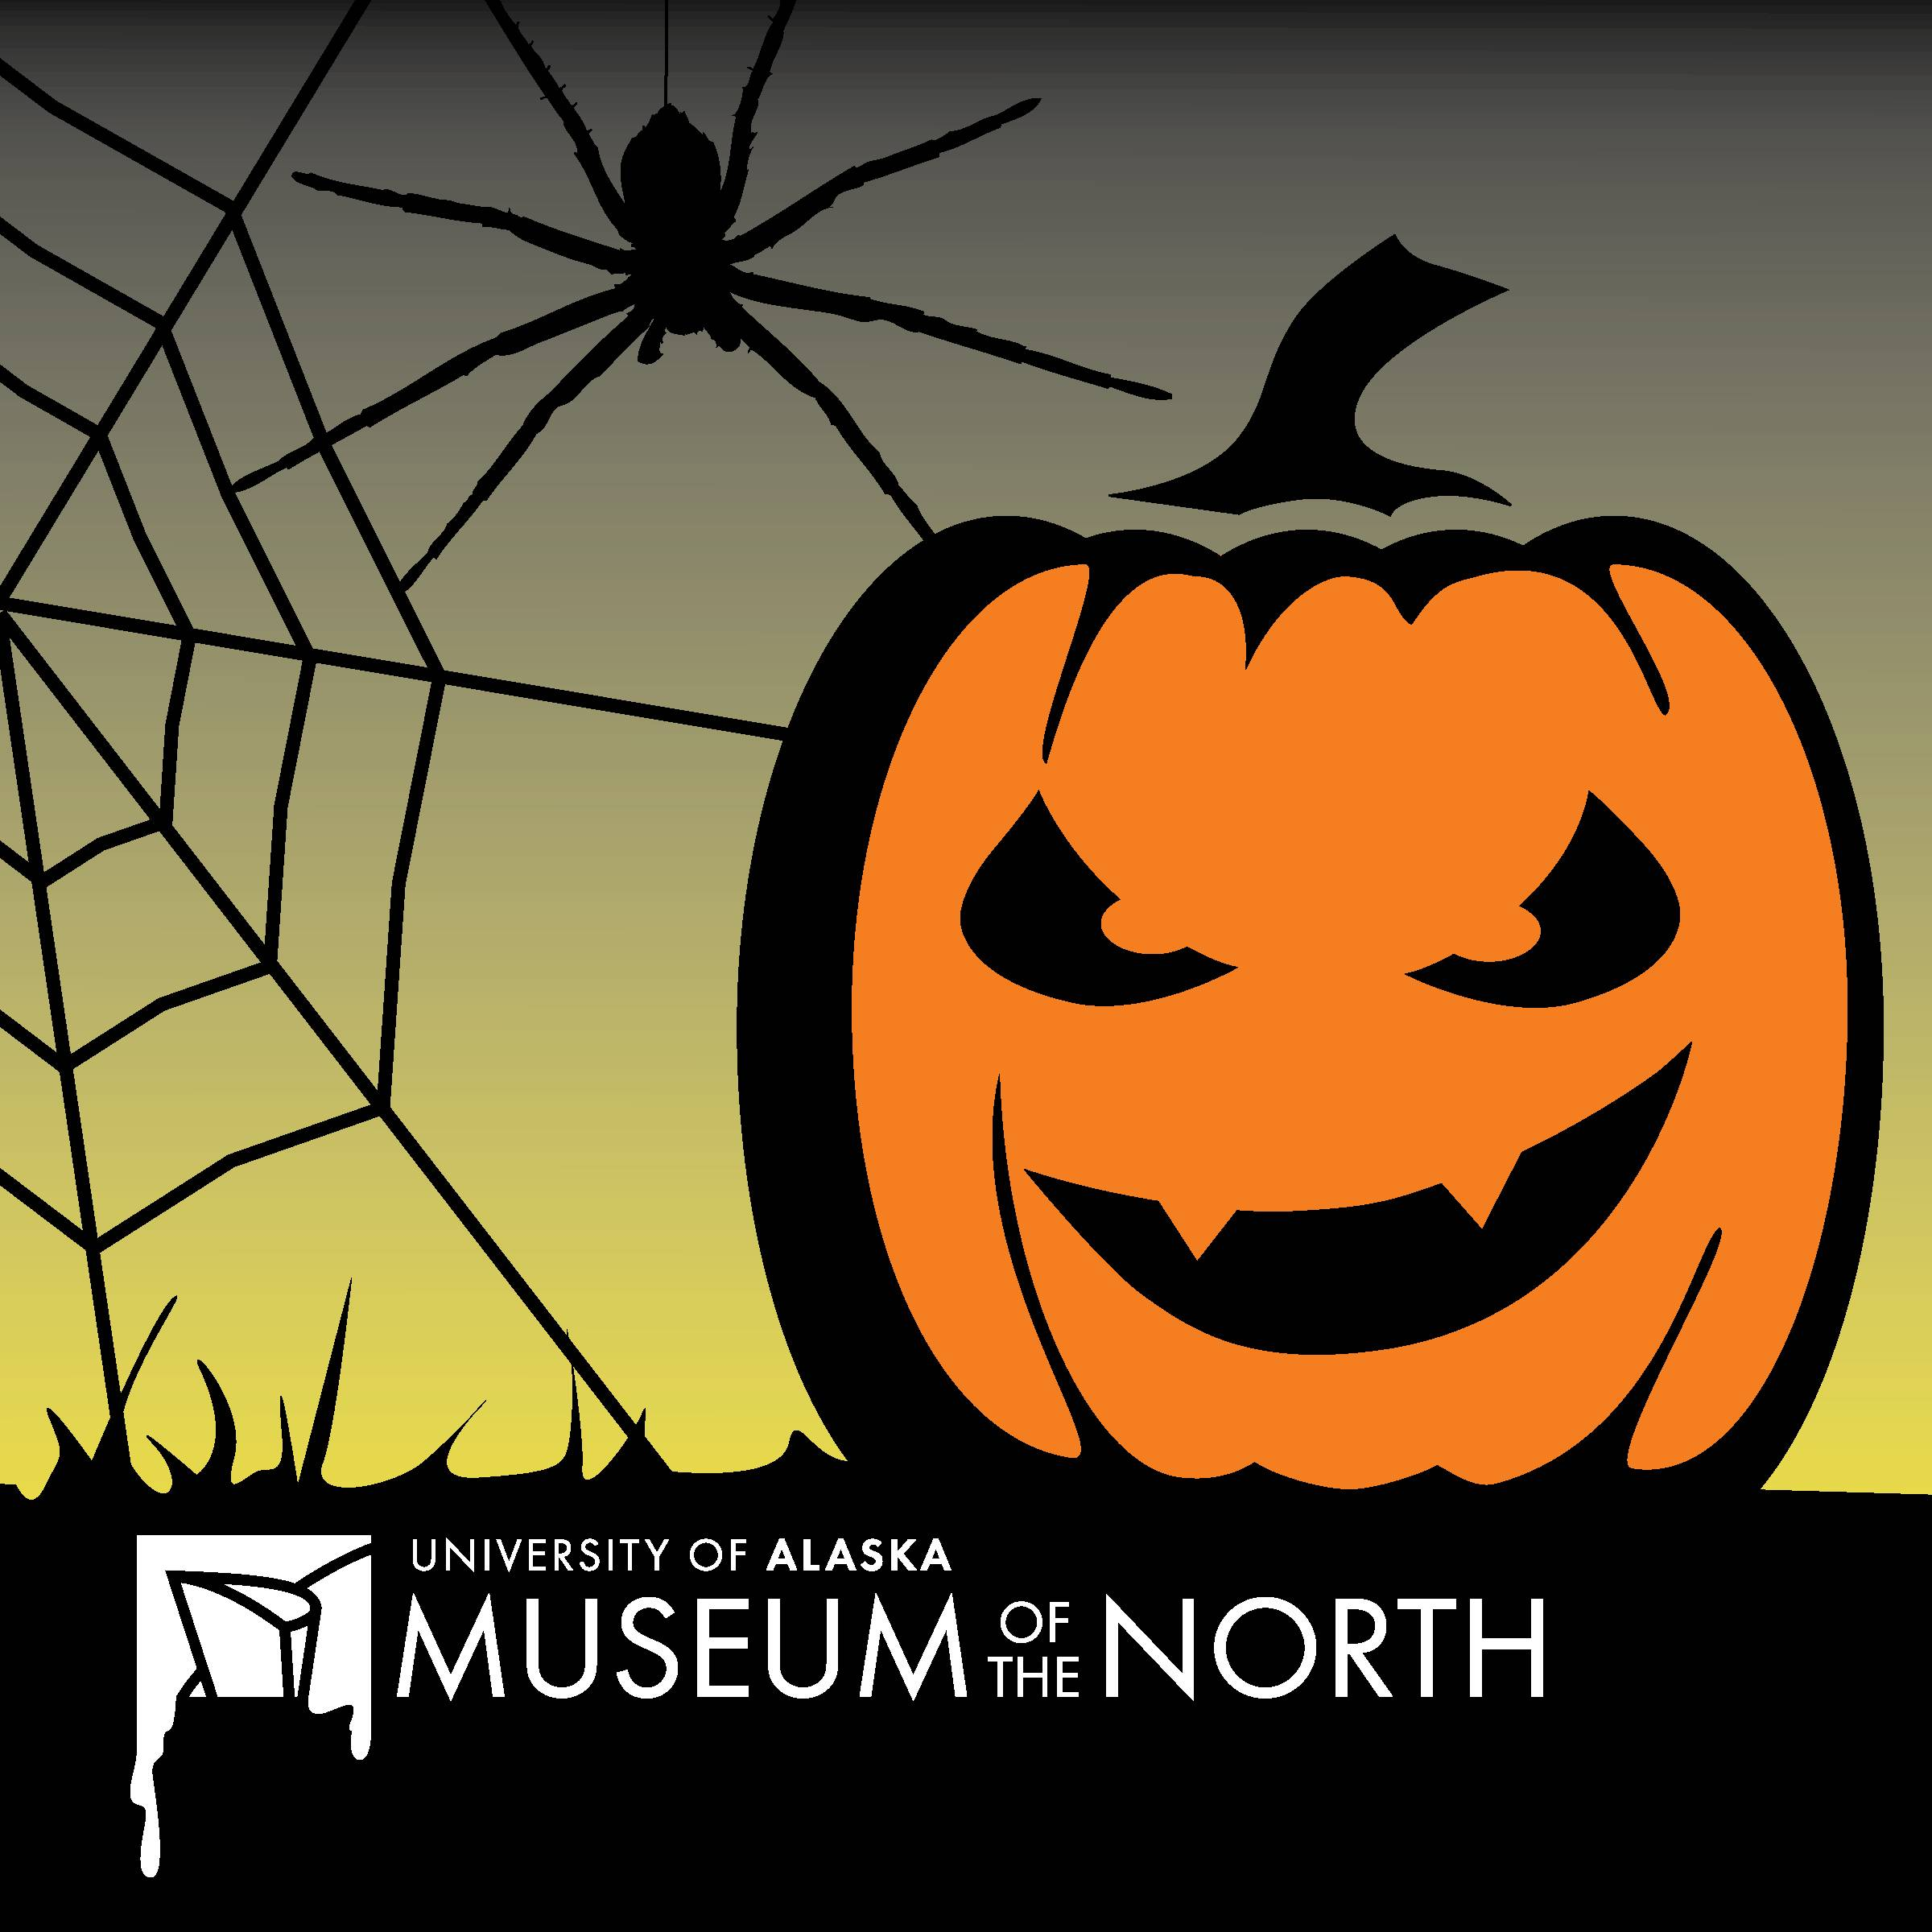 Logo with spider and jack-o-lantern